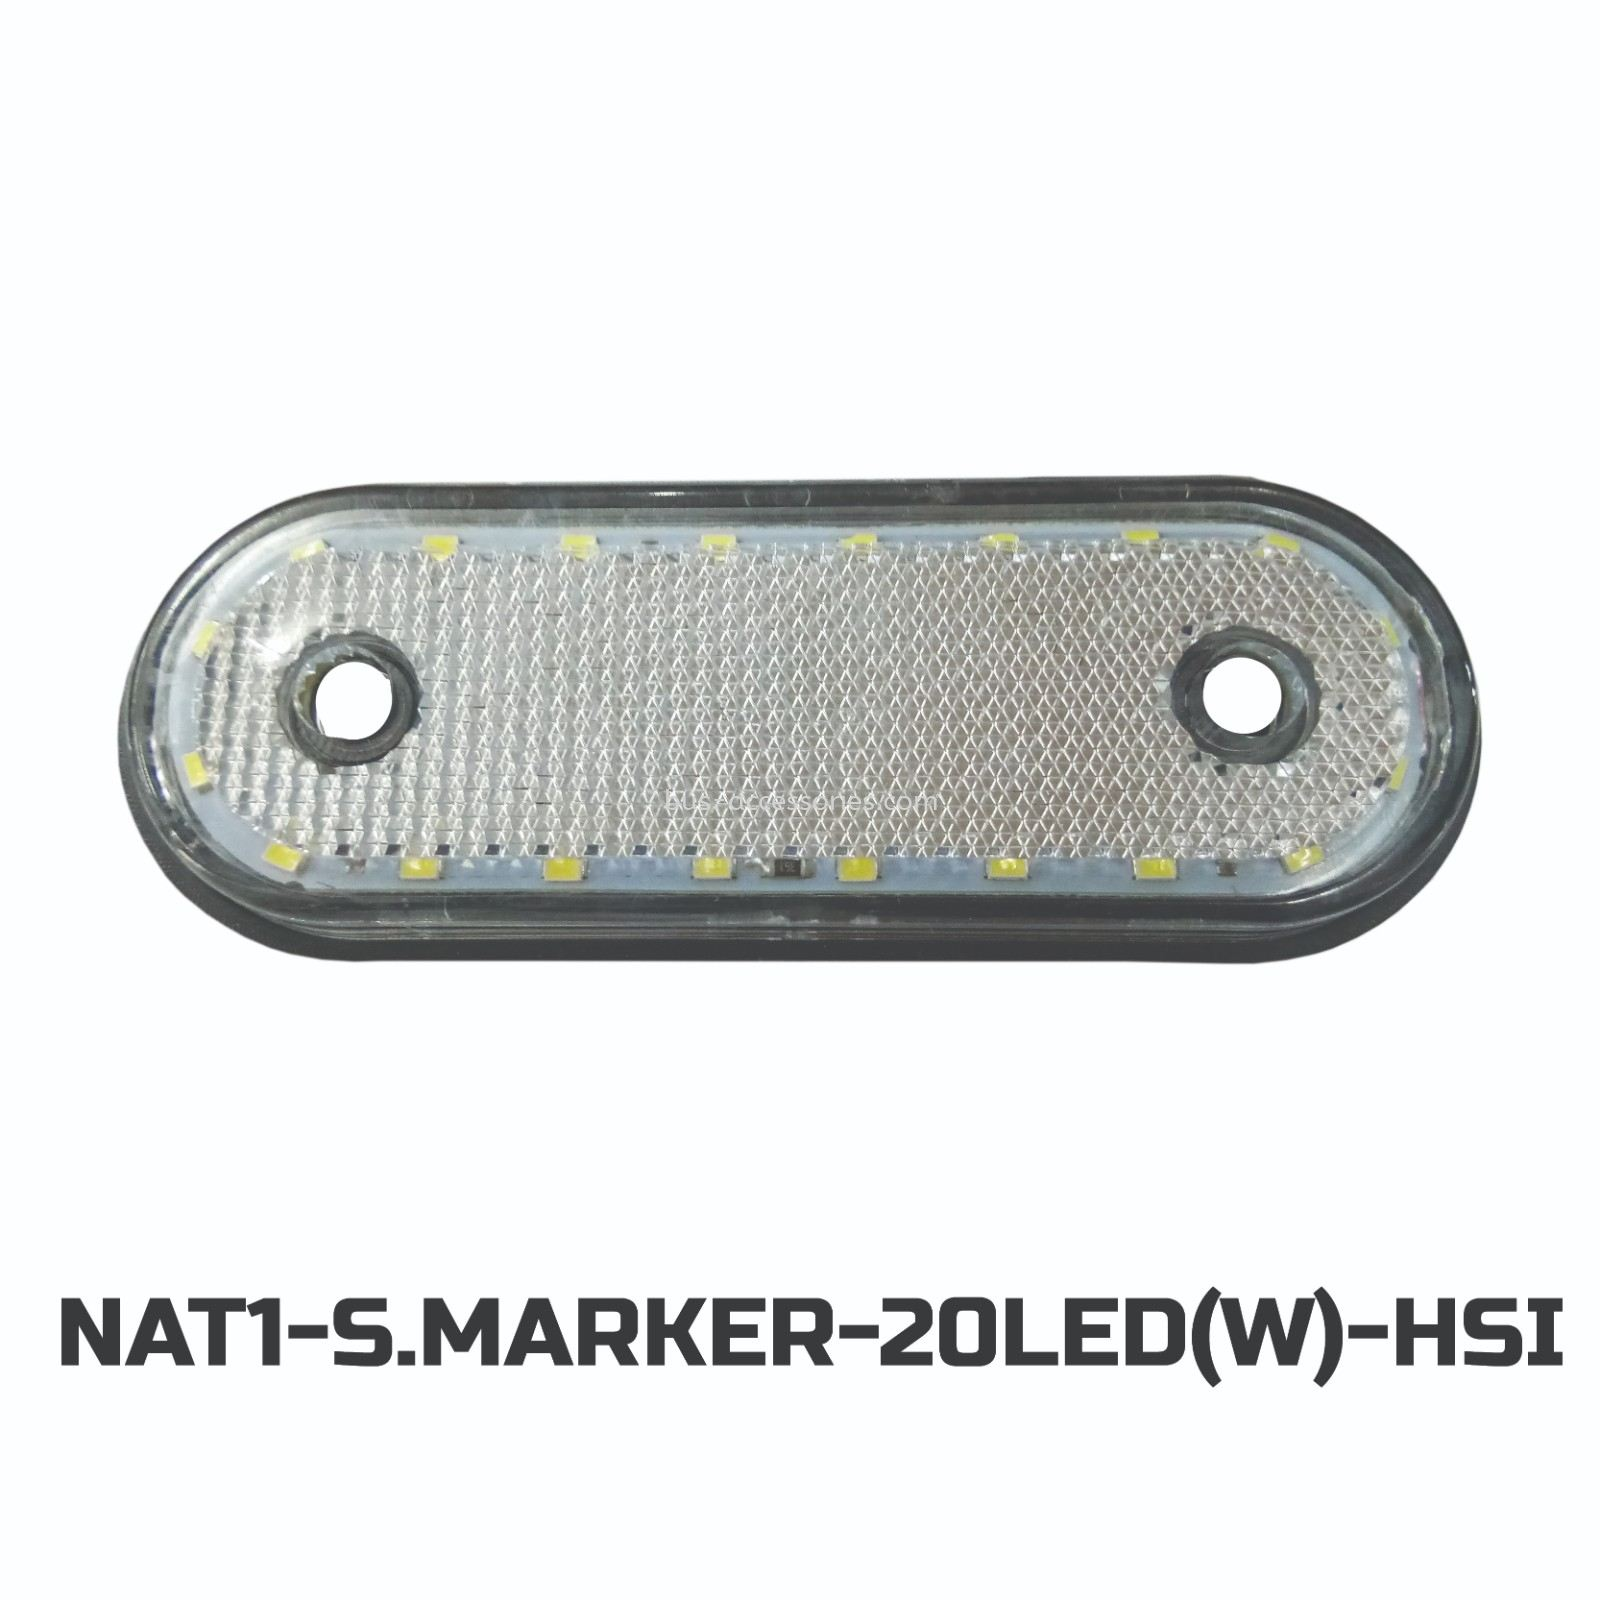 SIDE MARKER LAMP 20LED MALAYSIA THAILAND INDIA SINGAPORE INDONESIA